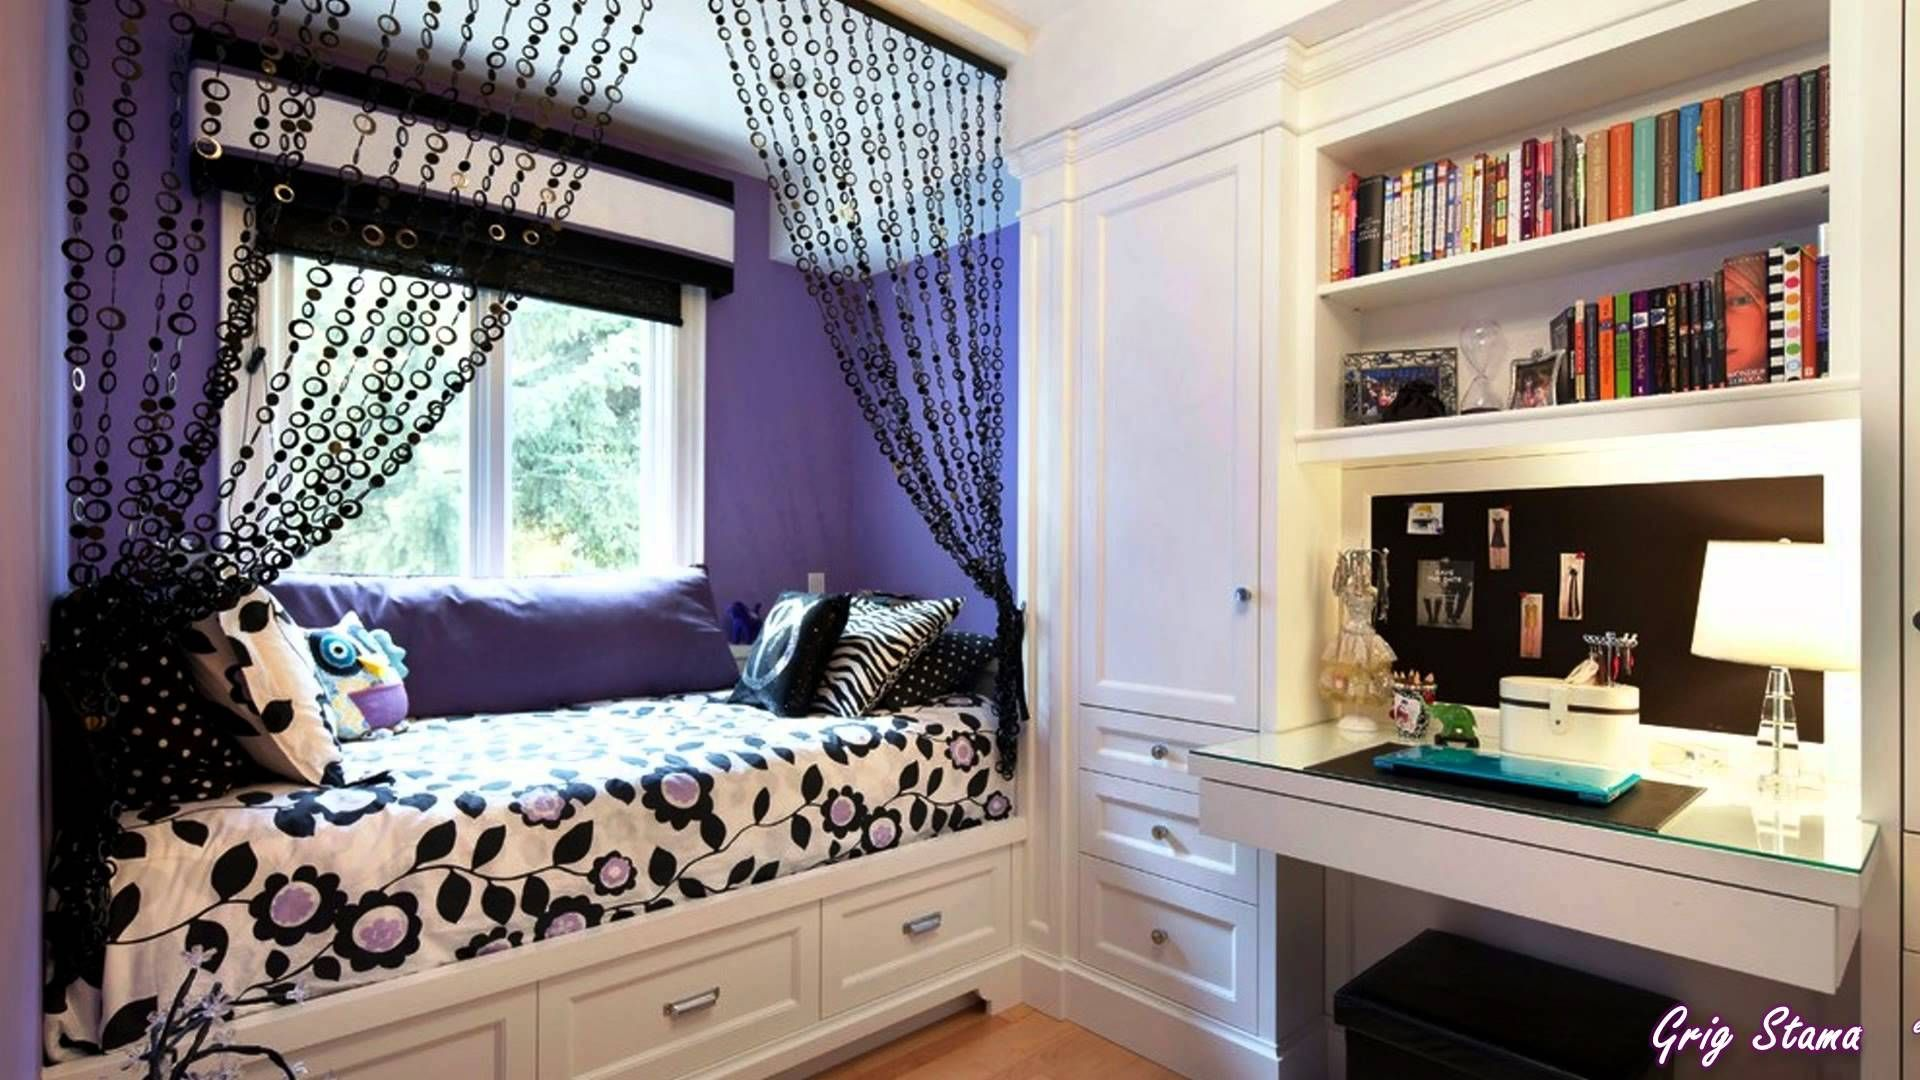 Simple bedroom design for girls - Bedroom Ideas For Teenage Girls Tumblr Simple Cosmoplast Biz